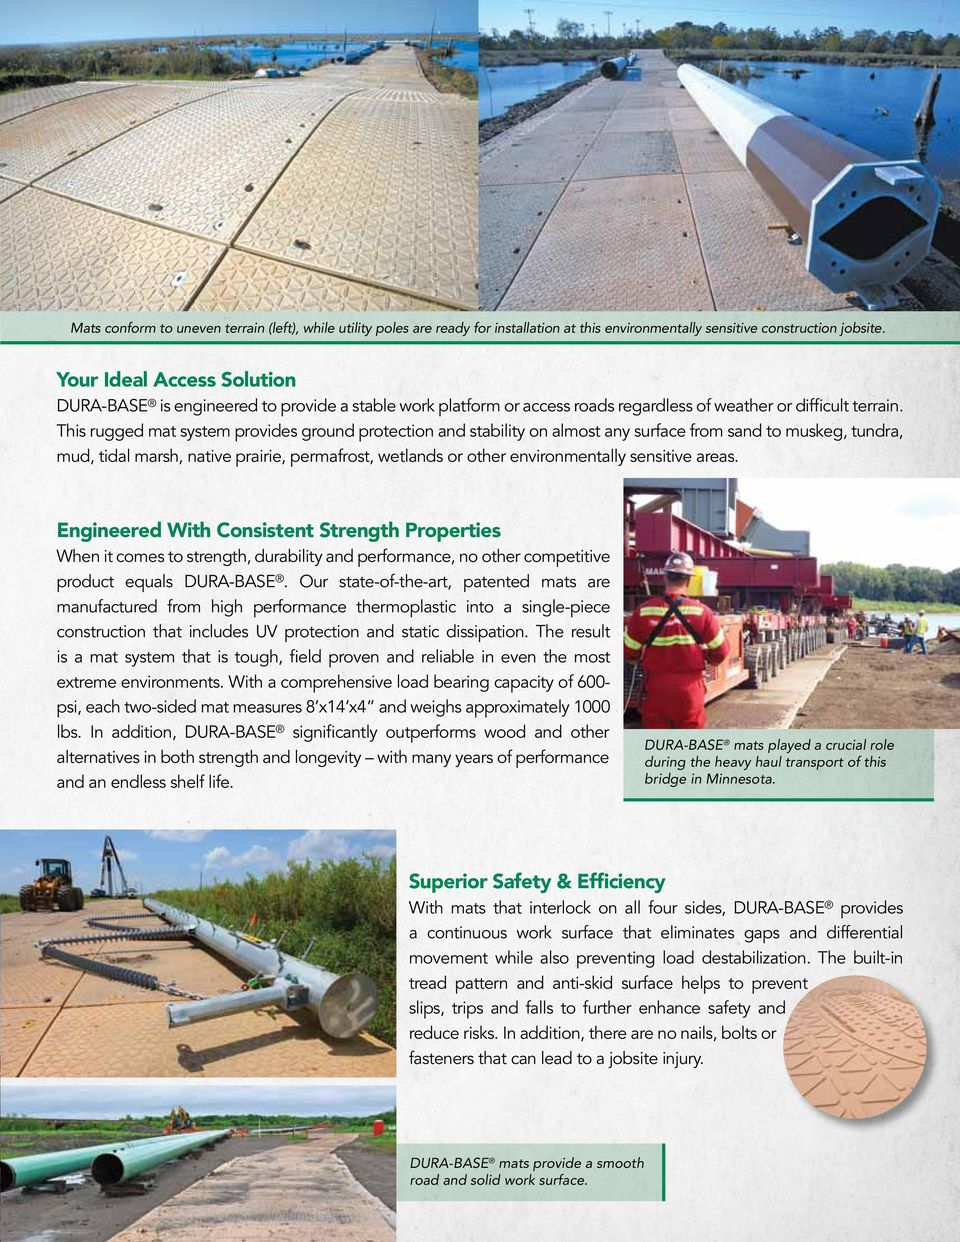 This rugged mat system provides ground protection and stability on almost any surface from sand to muskeg, tundra, mud, tidal marsh, native prairie, permafrost, wetlands or other environmentally